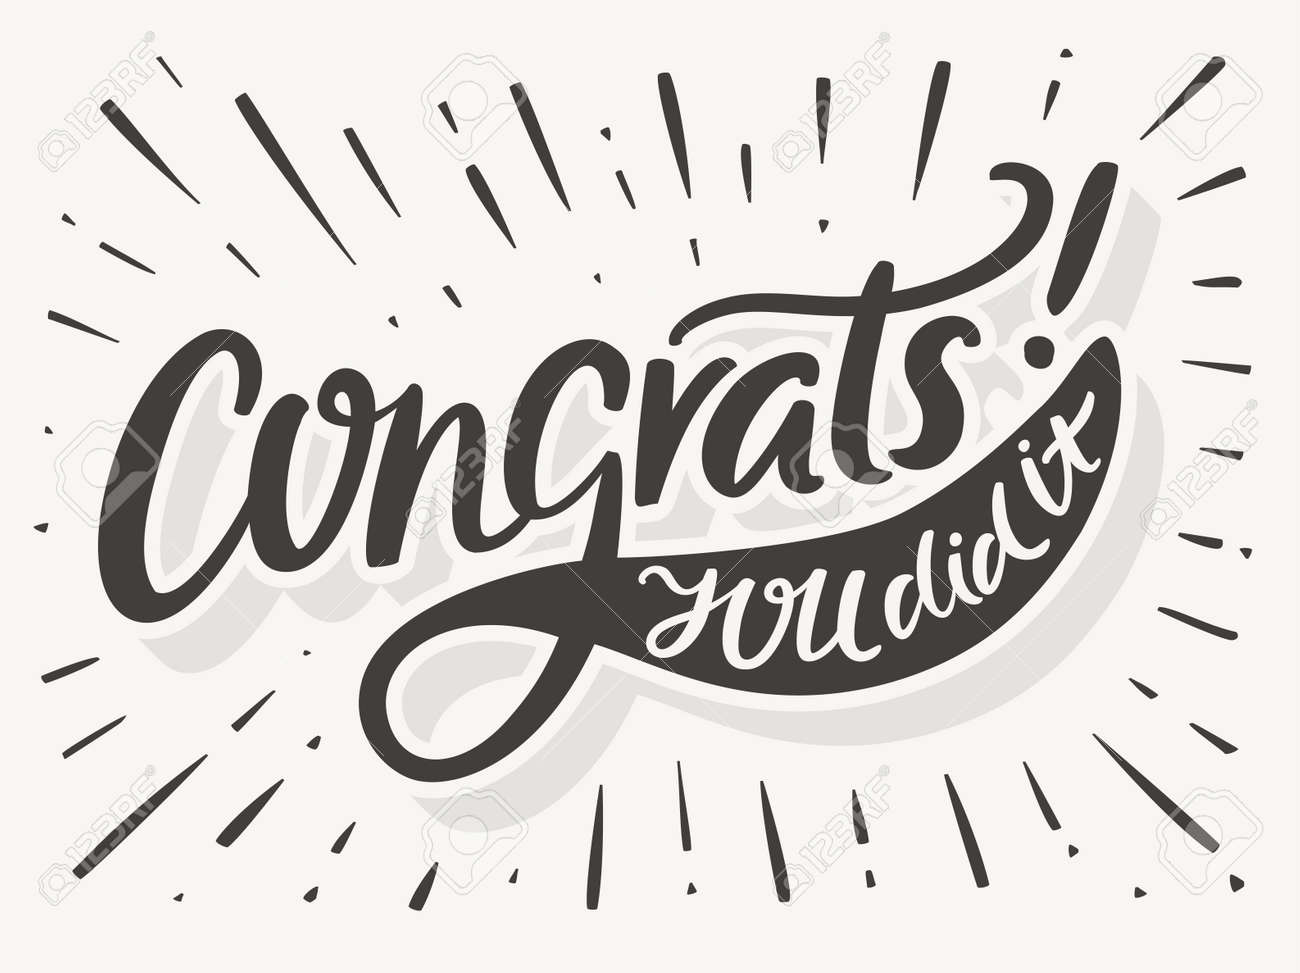 congrats you did it congratulations card hand lettering vector